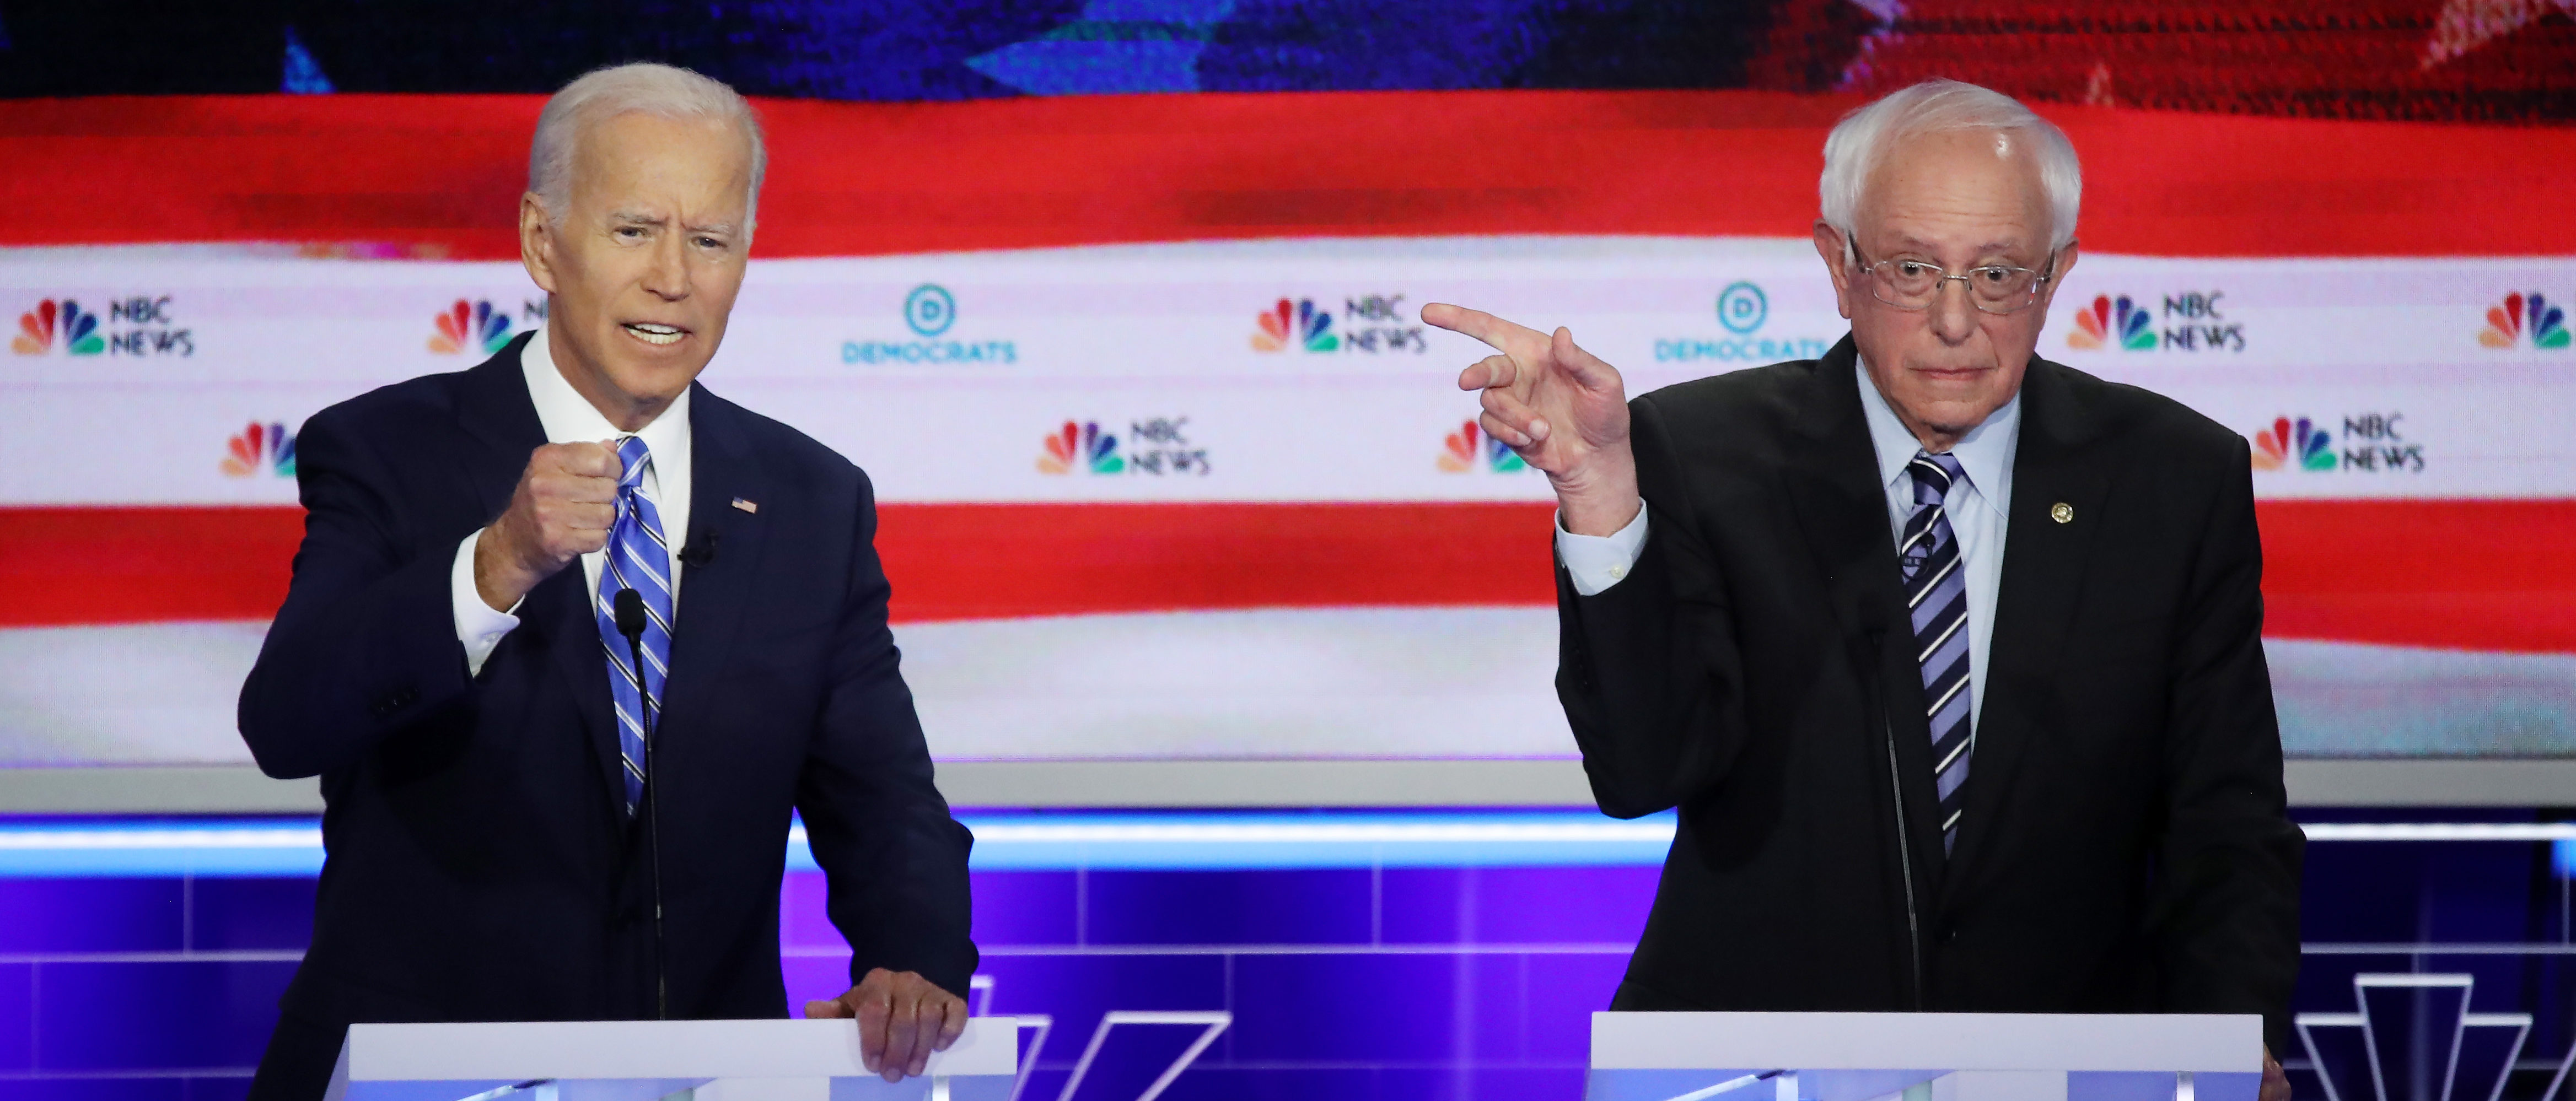 Democratic presidential candidates former Vice President Joe Biden and Sen. Bernie Sanders speak during the second night of the first Democratic presidential debate on June 27, 2019 in Miami, Florida. (Drew Angerer/Getty Images)